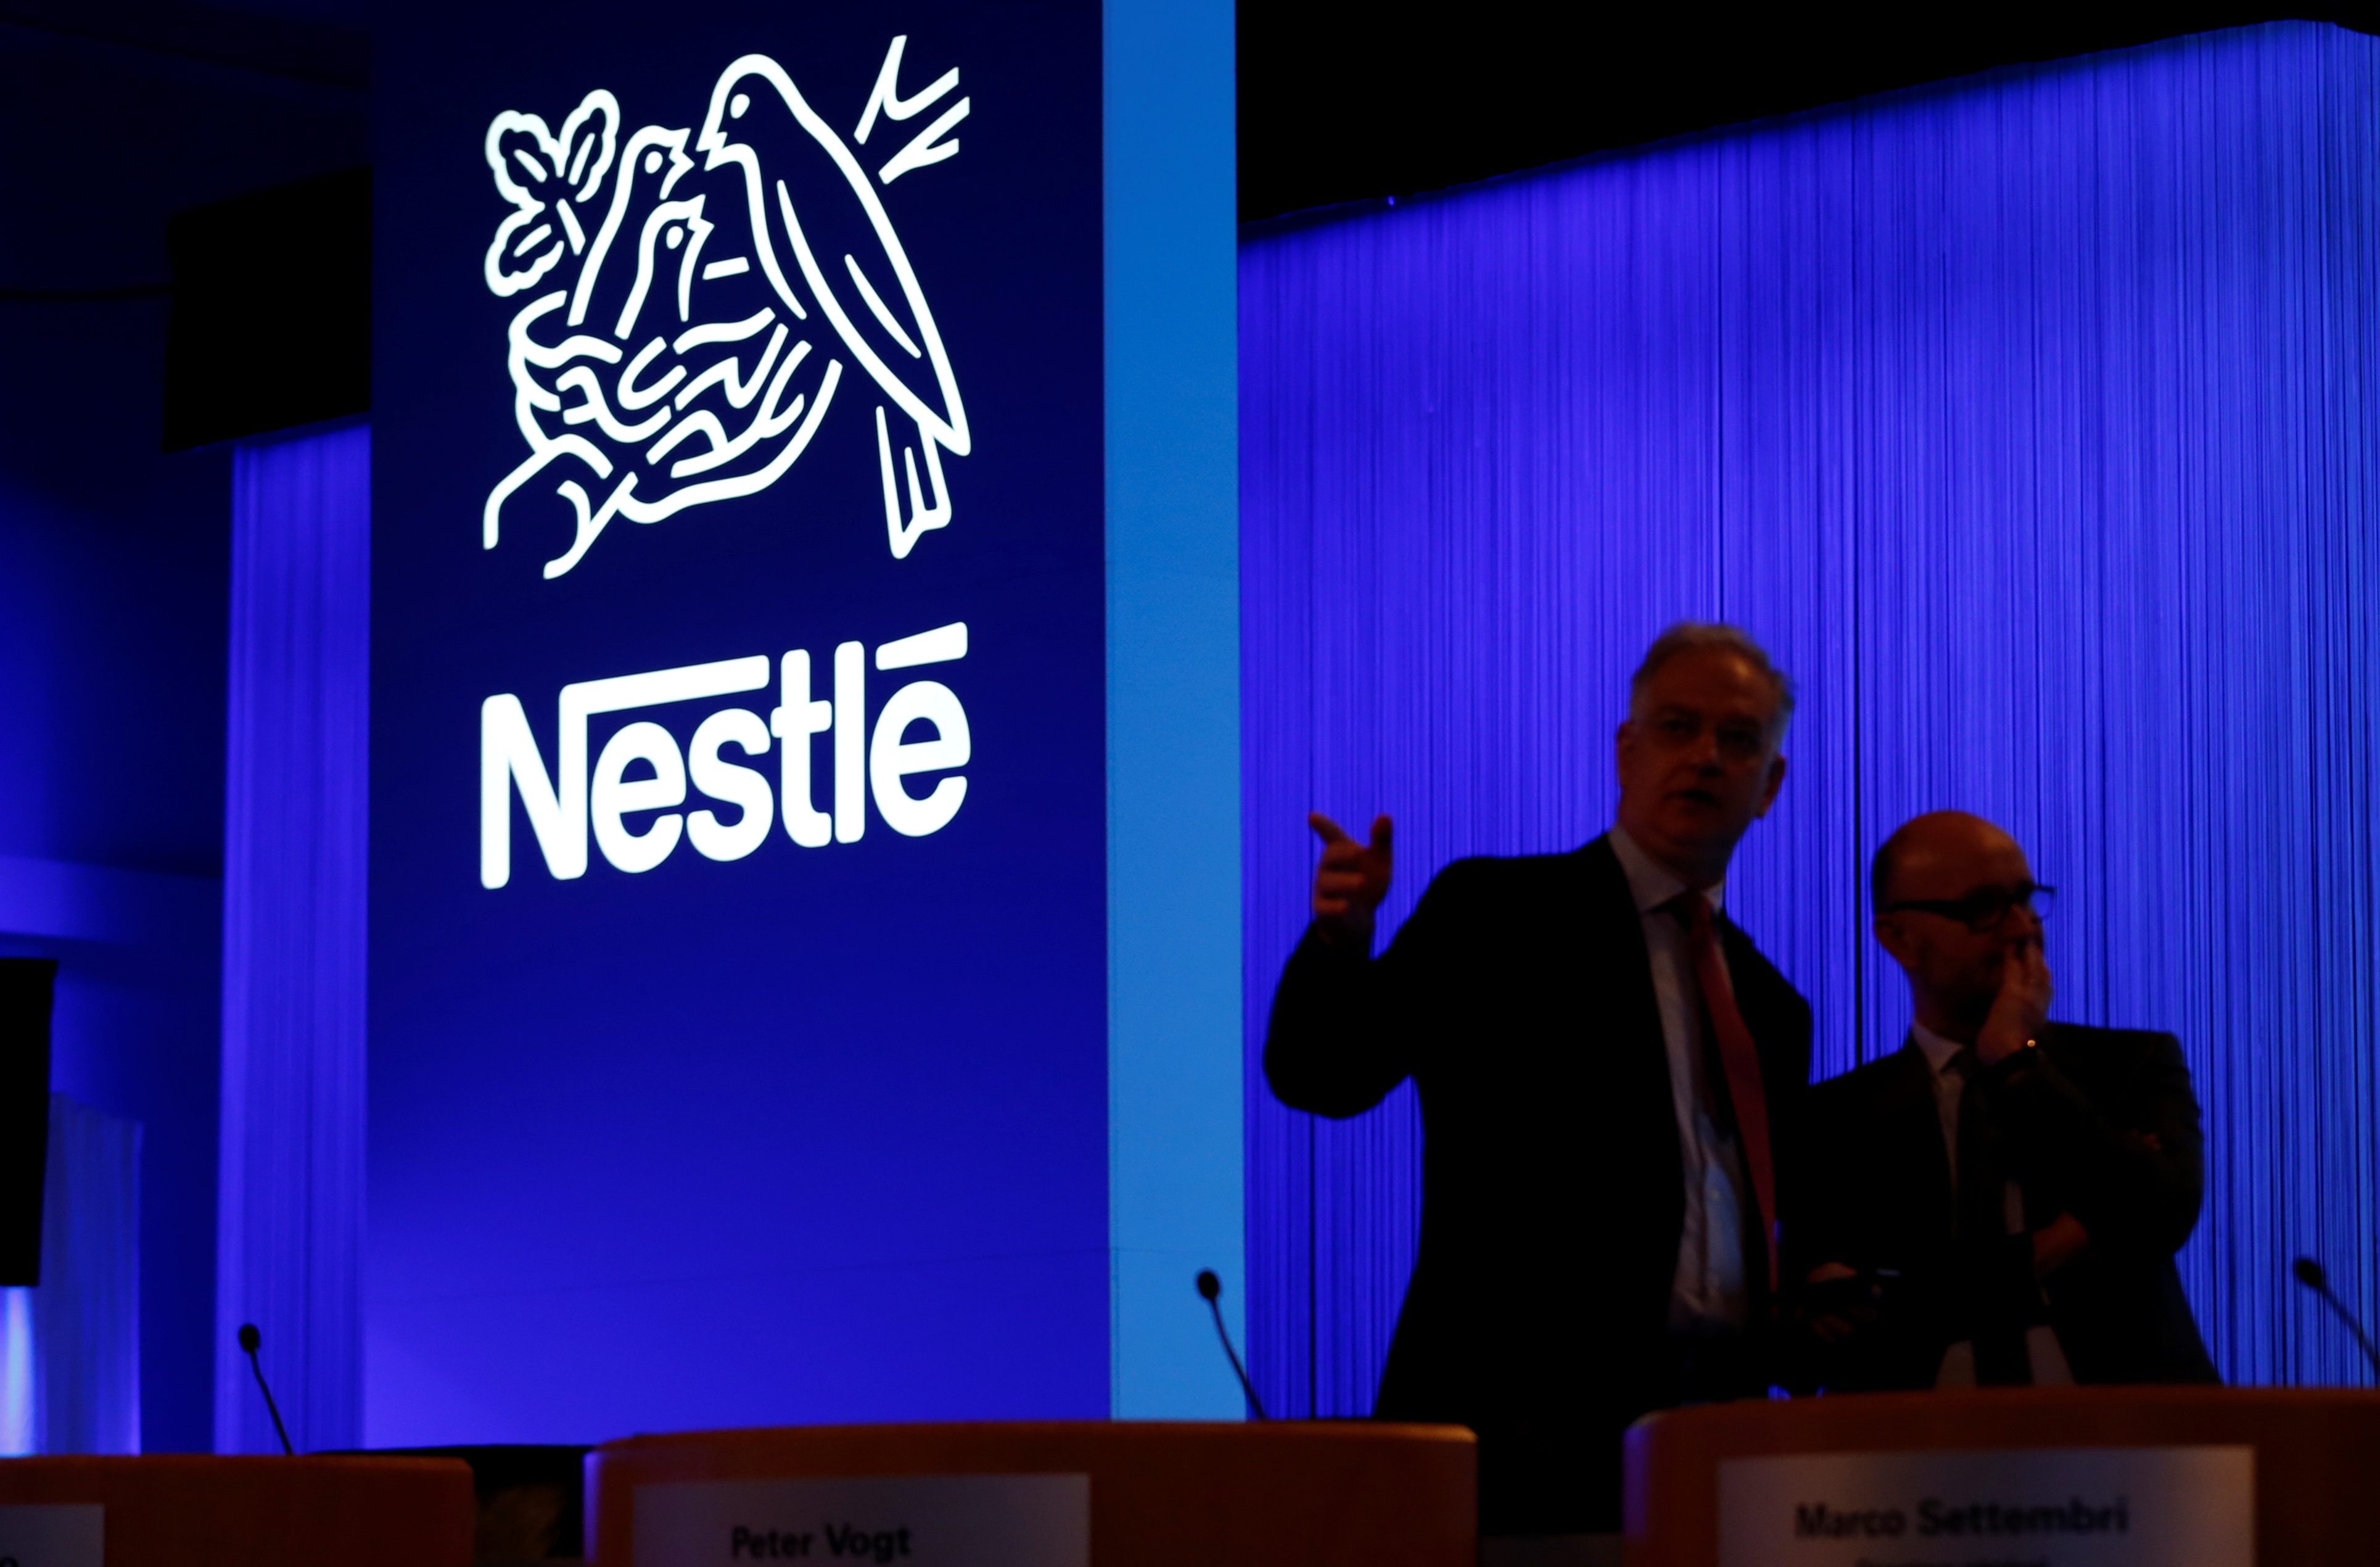 Nestle managers arrive before the shareholders meeting in Lausanne, Switzerland, April 6, 2017. REUTERS/Denis Balibouse - RC17C52BD620